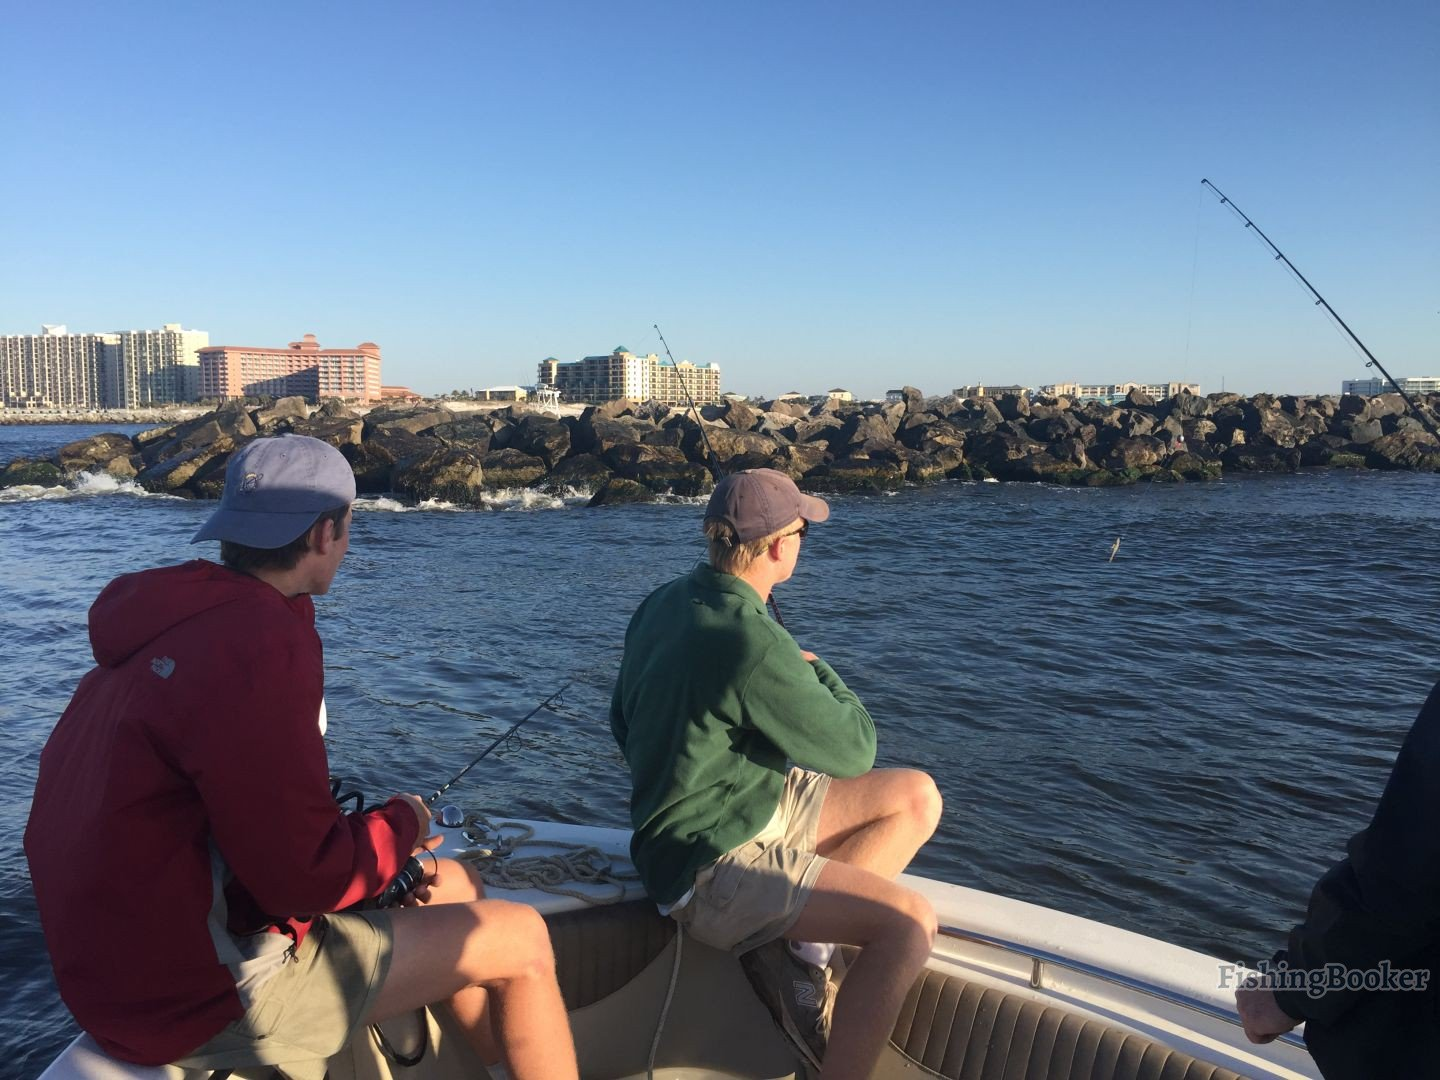 Top 10 fishing charters in gulf shores al fishingbooker for Gulf shores alabama fishing charters